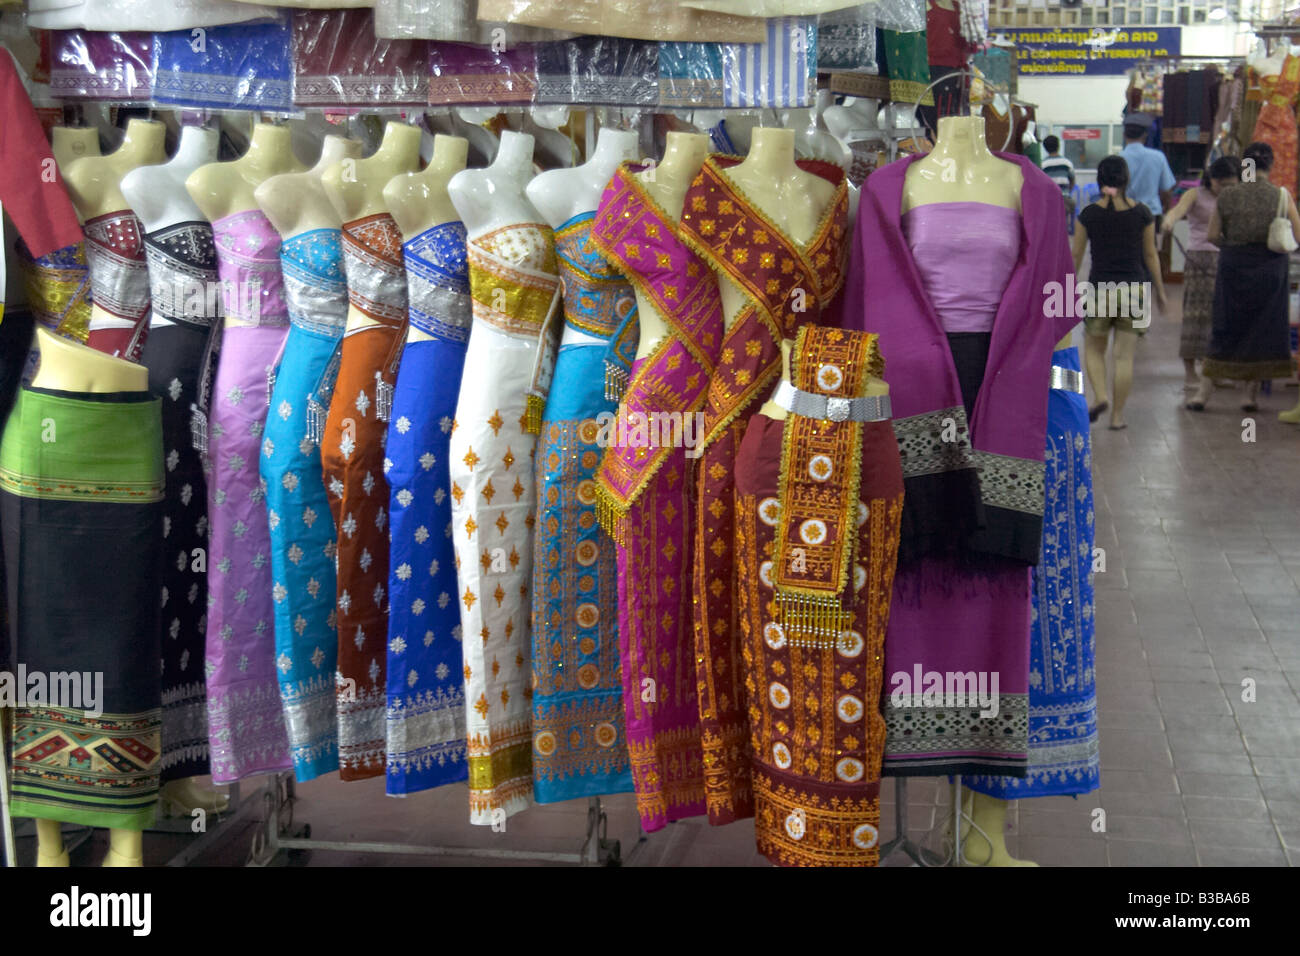 d943ece39730 Traditional Laotian clothing for sale at the day market in the city of  Vientiane